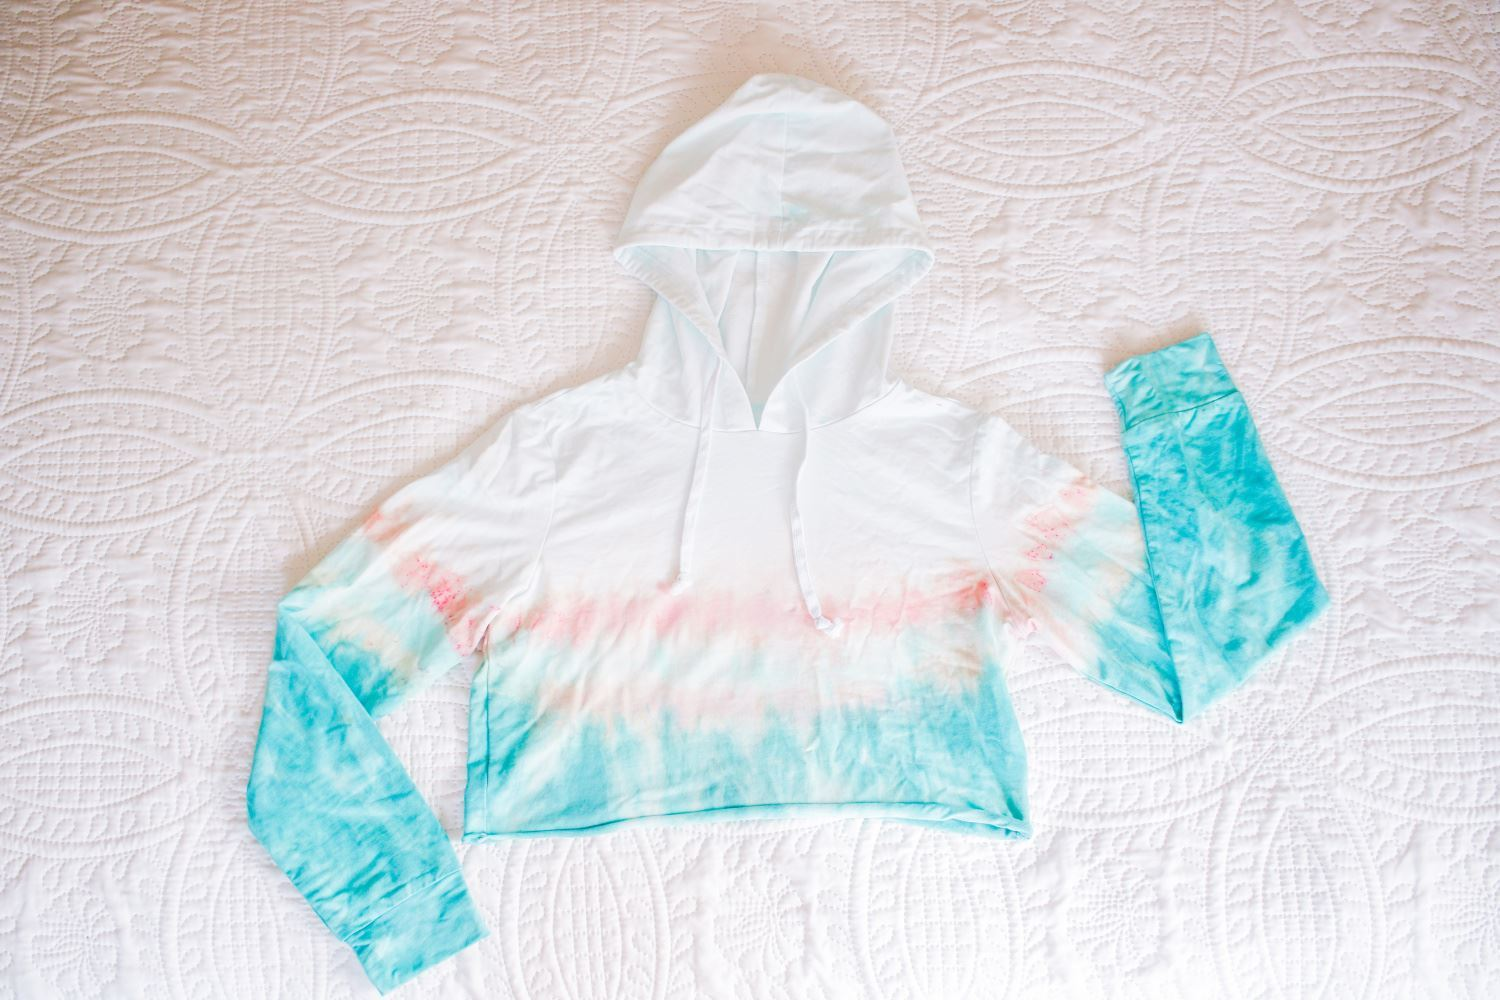 How to Use Soda Ash for Tie-dye